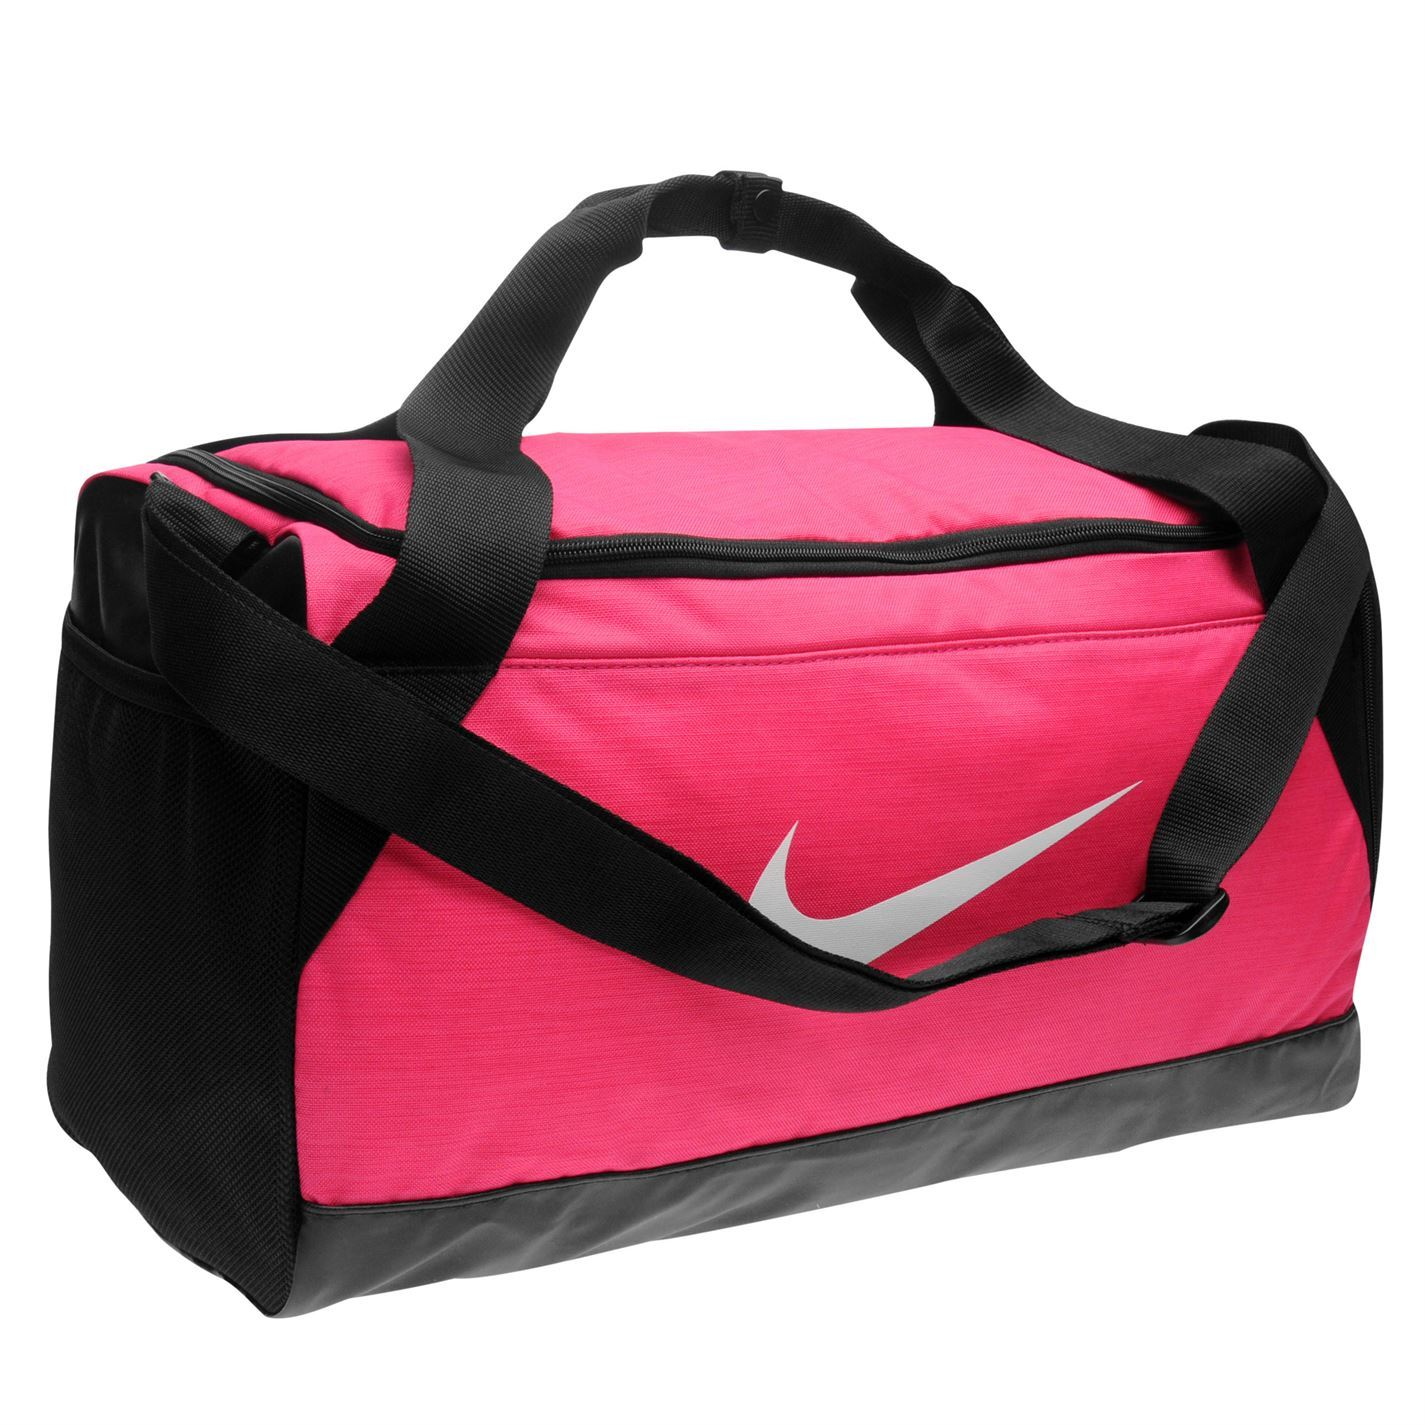 Nike Brasilia Small Grip Sports Holdall Pink Gym Kit Bag Carryall  26720d686c02f